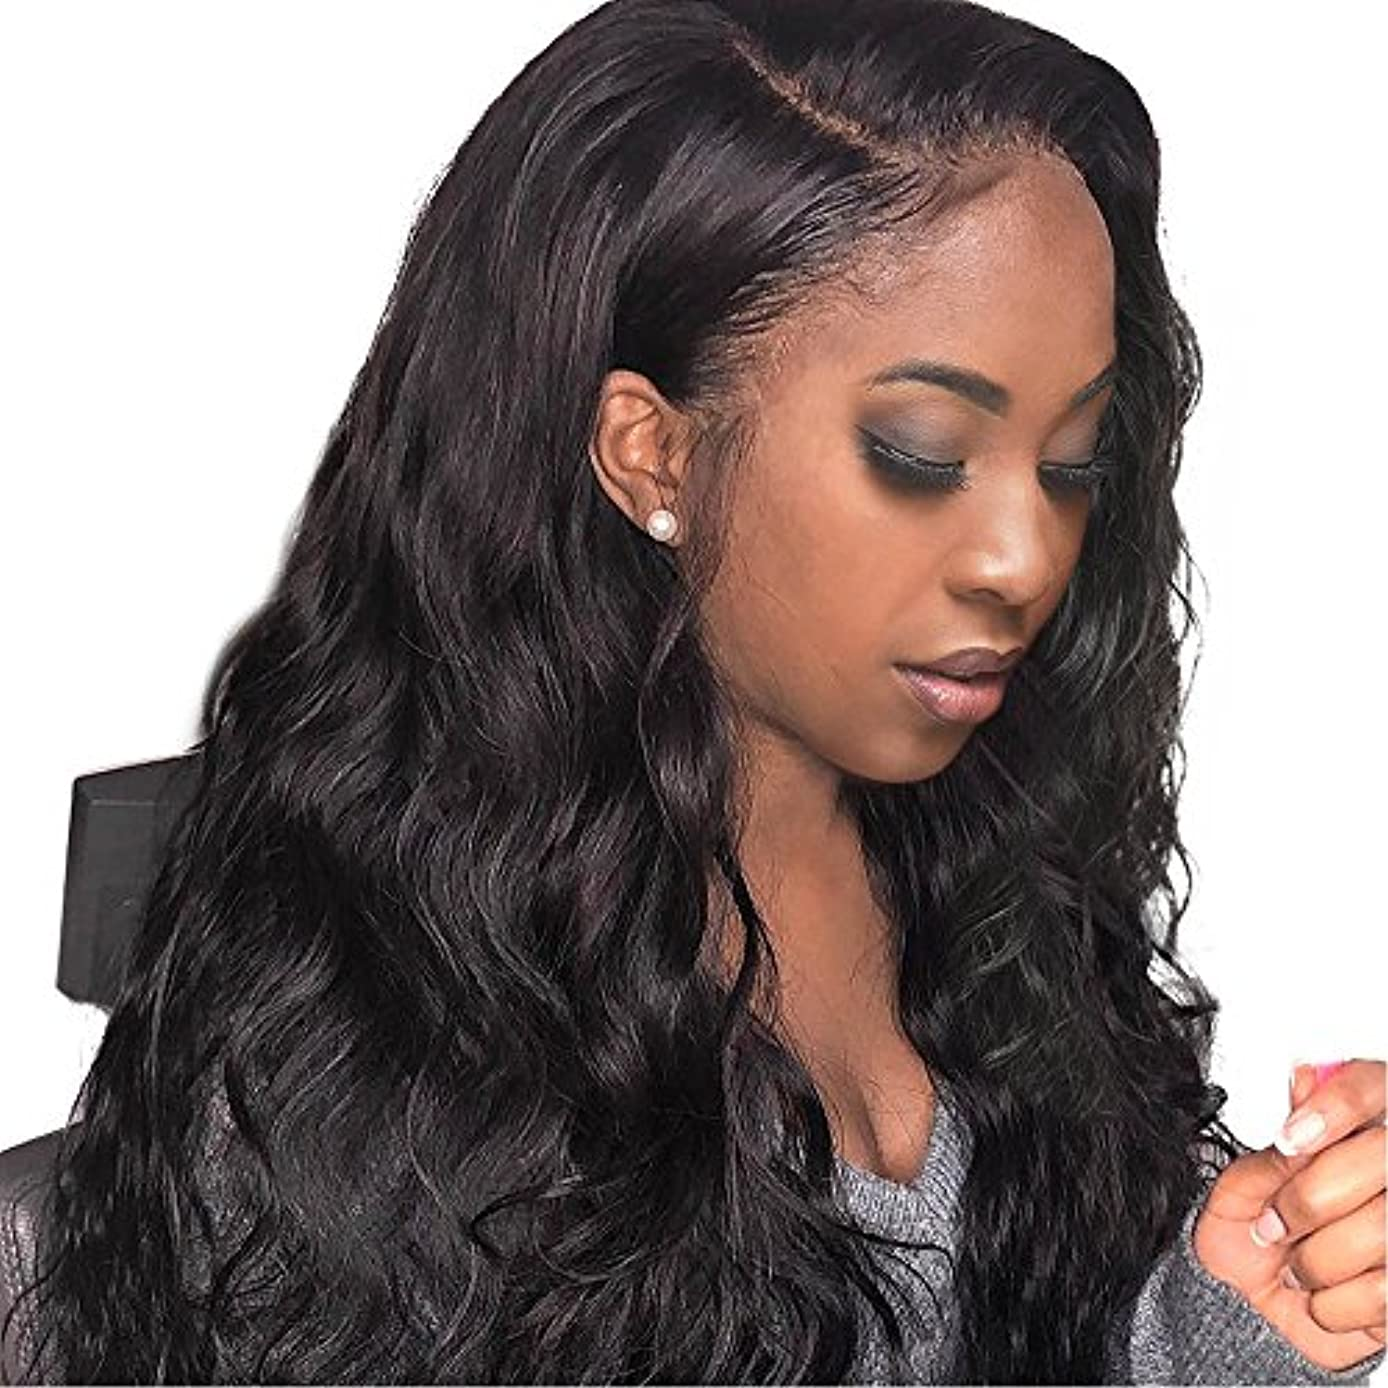 Body Wave Wigs For Black Women Human Hair 14inch Pre Plucked Lace Front Wigs Human Hair With Baby Hair 130% Density Natural Black Color shuangya hair